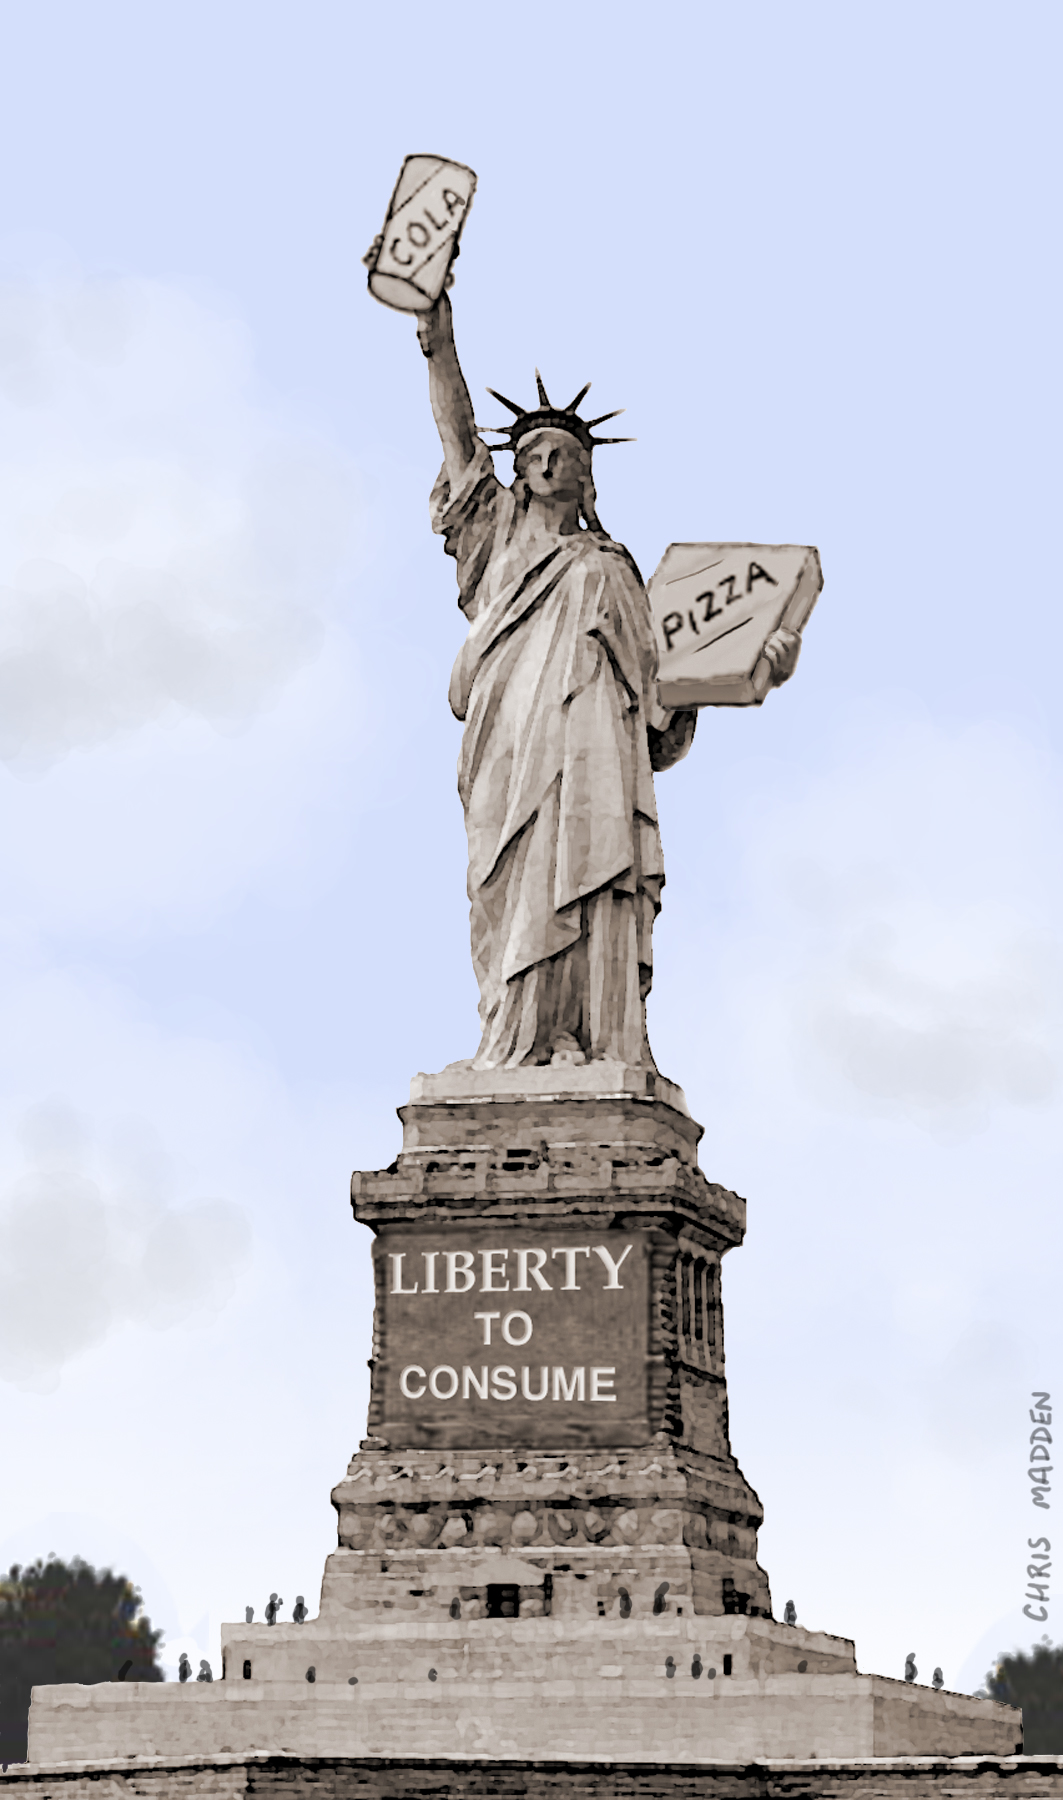 Consumerism cartoon: the Statue of Liberty as a symbol of the consumer society